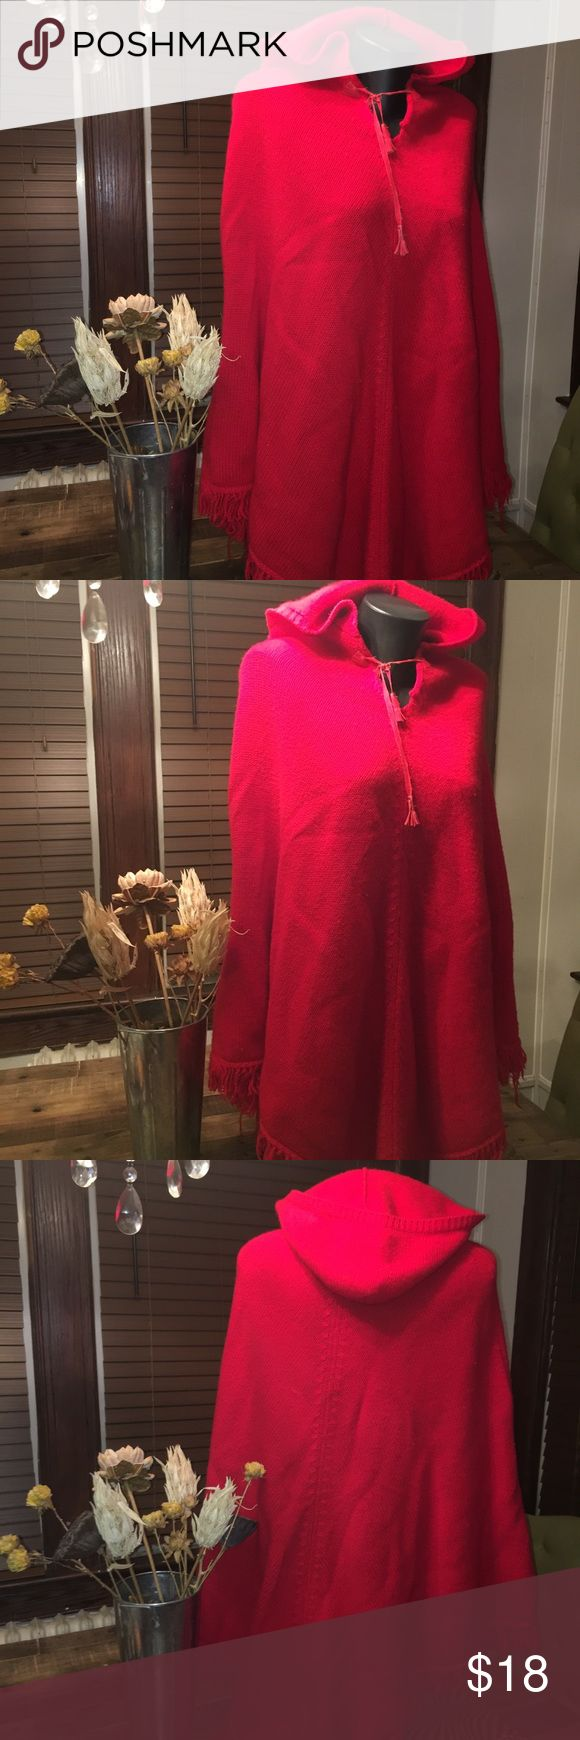 💥Benetton Red Wool Hooded Poncho Bright Red Wool Poncho. Great item for any closet. Slight rip in the front chest shown in pictures. Easy fix. No other issues. United Colors Of Benetton Jackets & Coats Capes